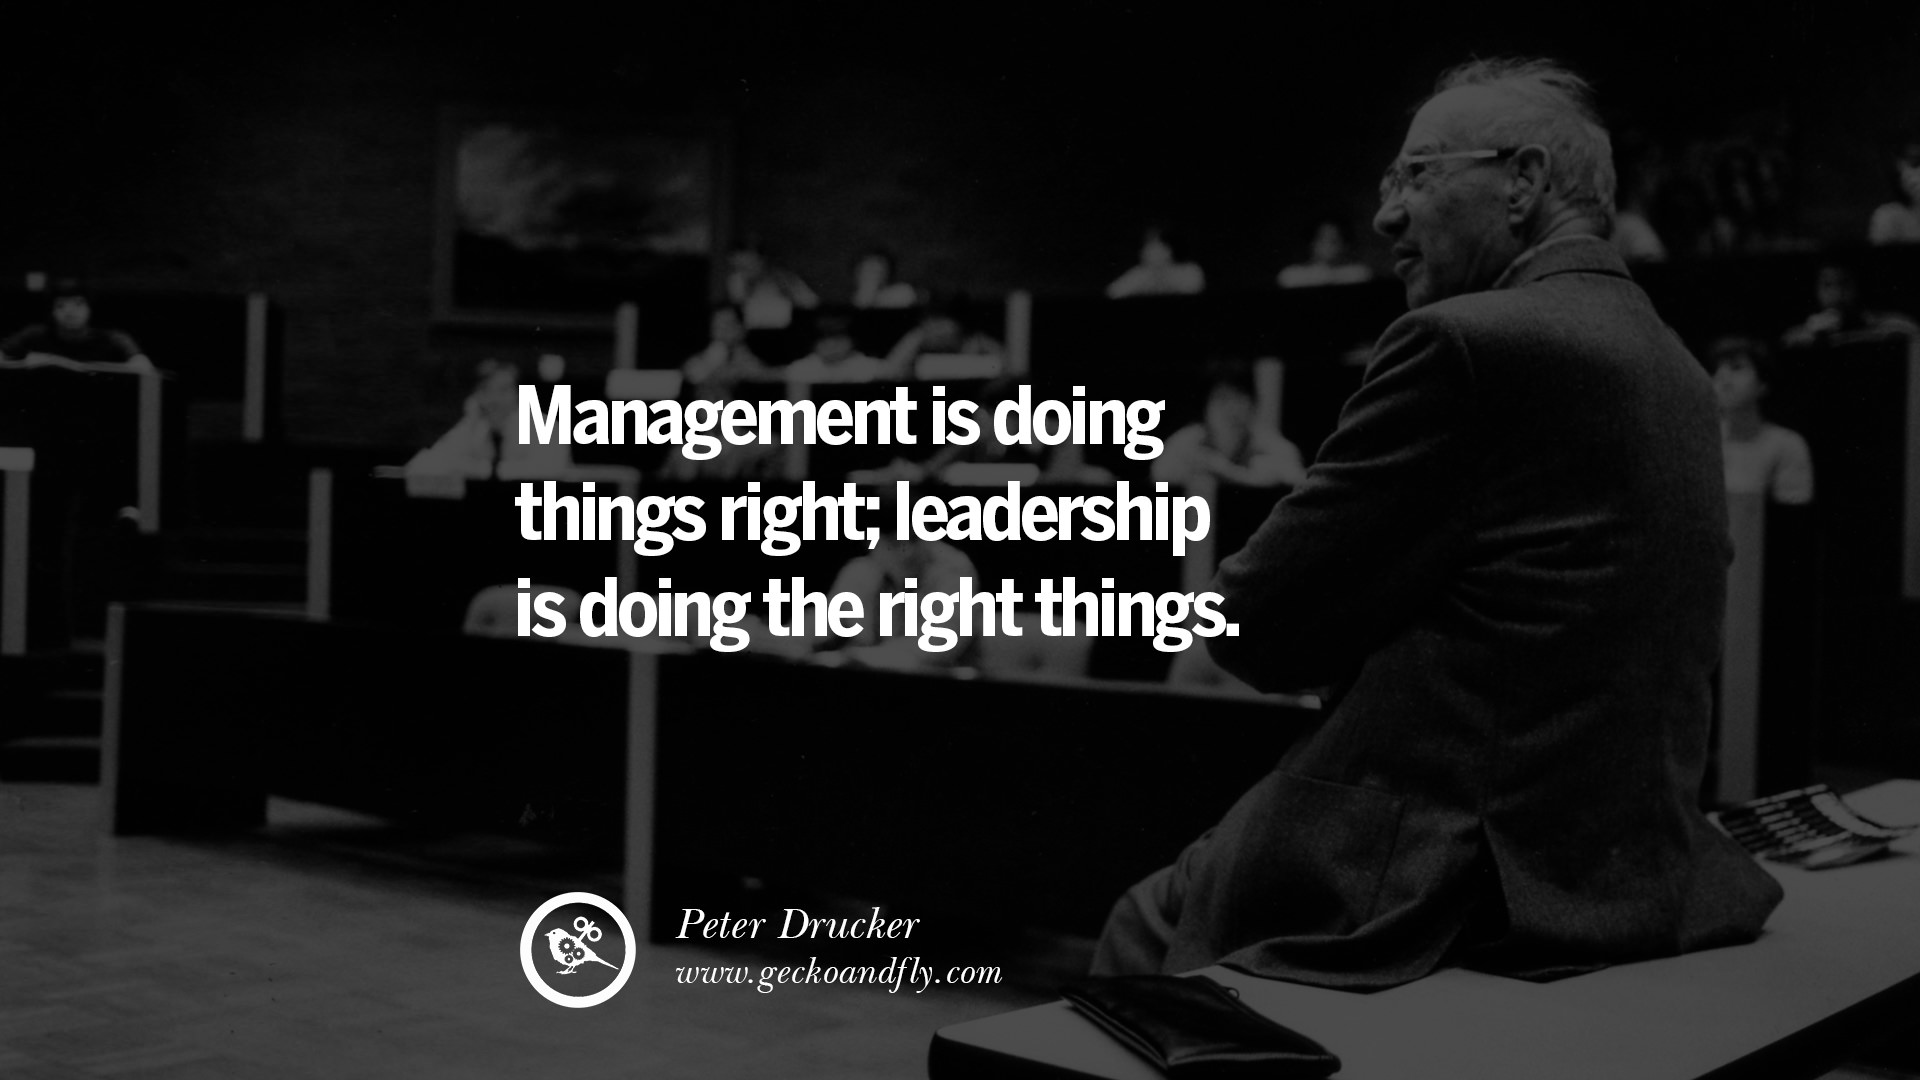 Motivational Funny Quotes On Life 18 Uplifting And Motivational Quotes On Management Leadership